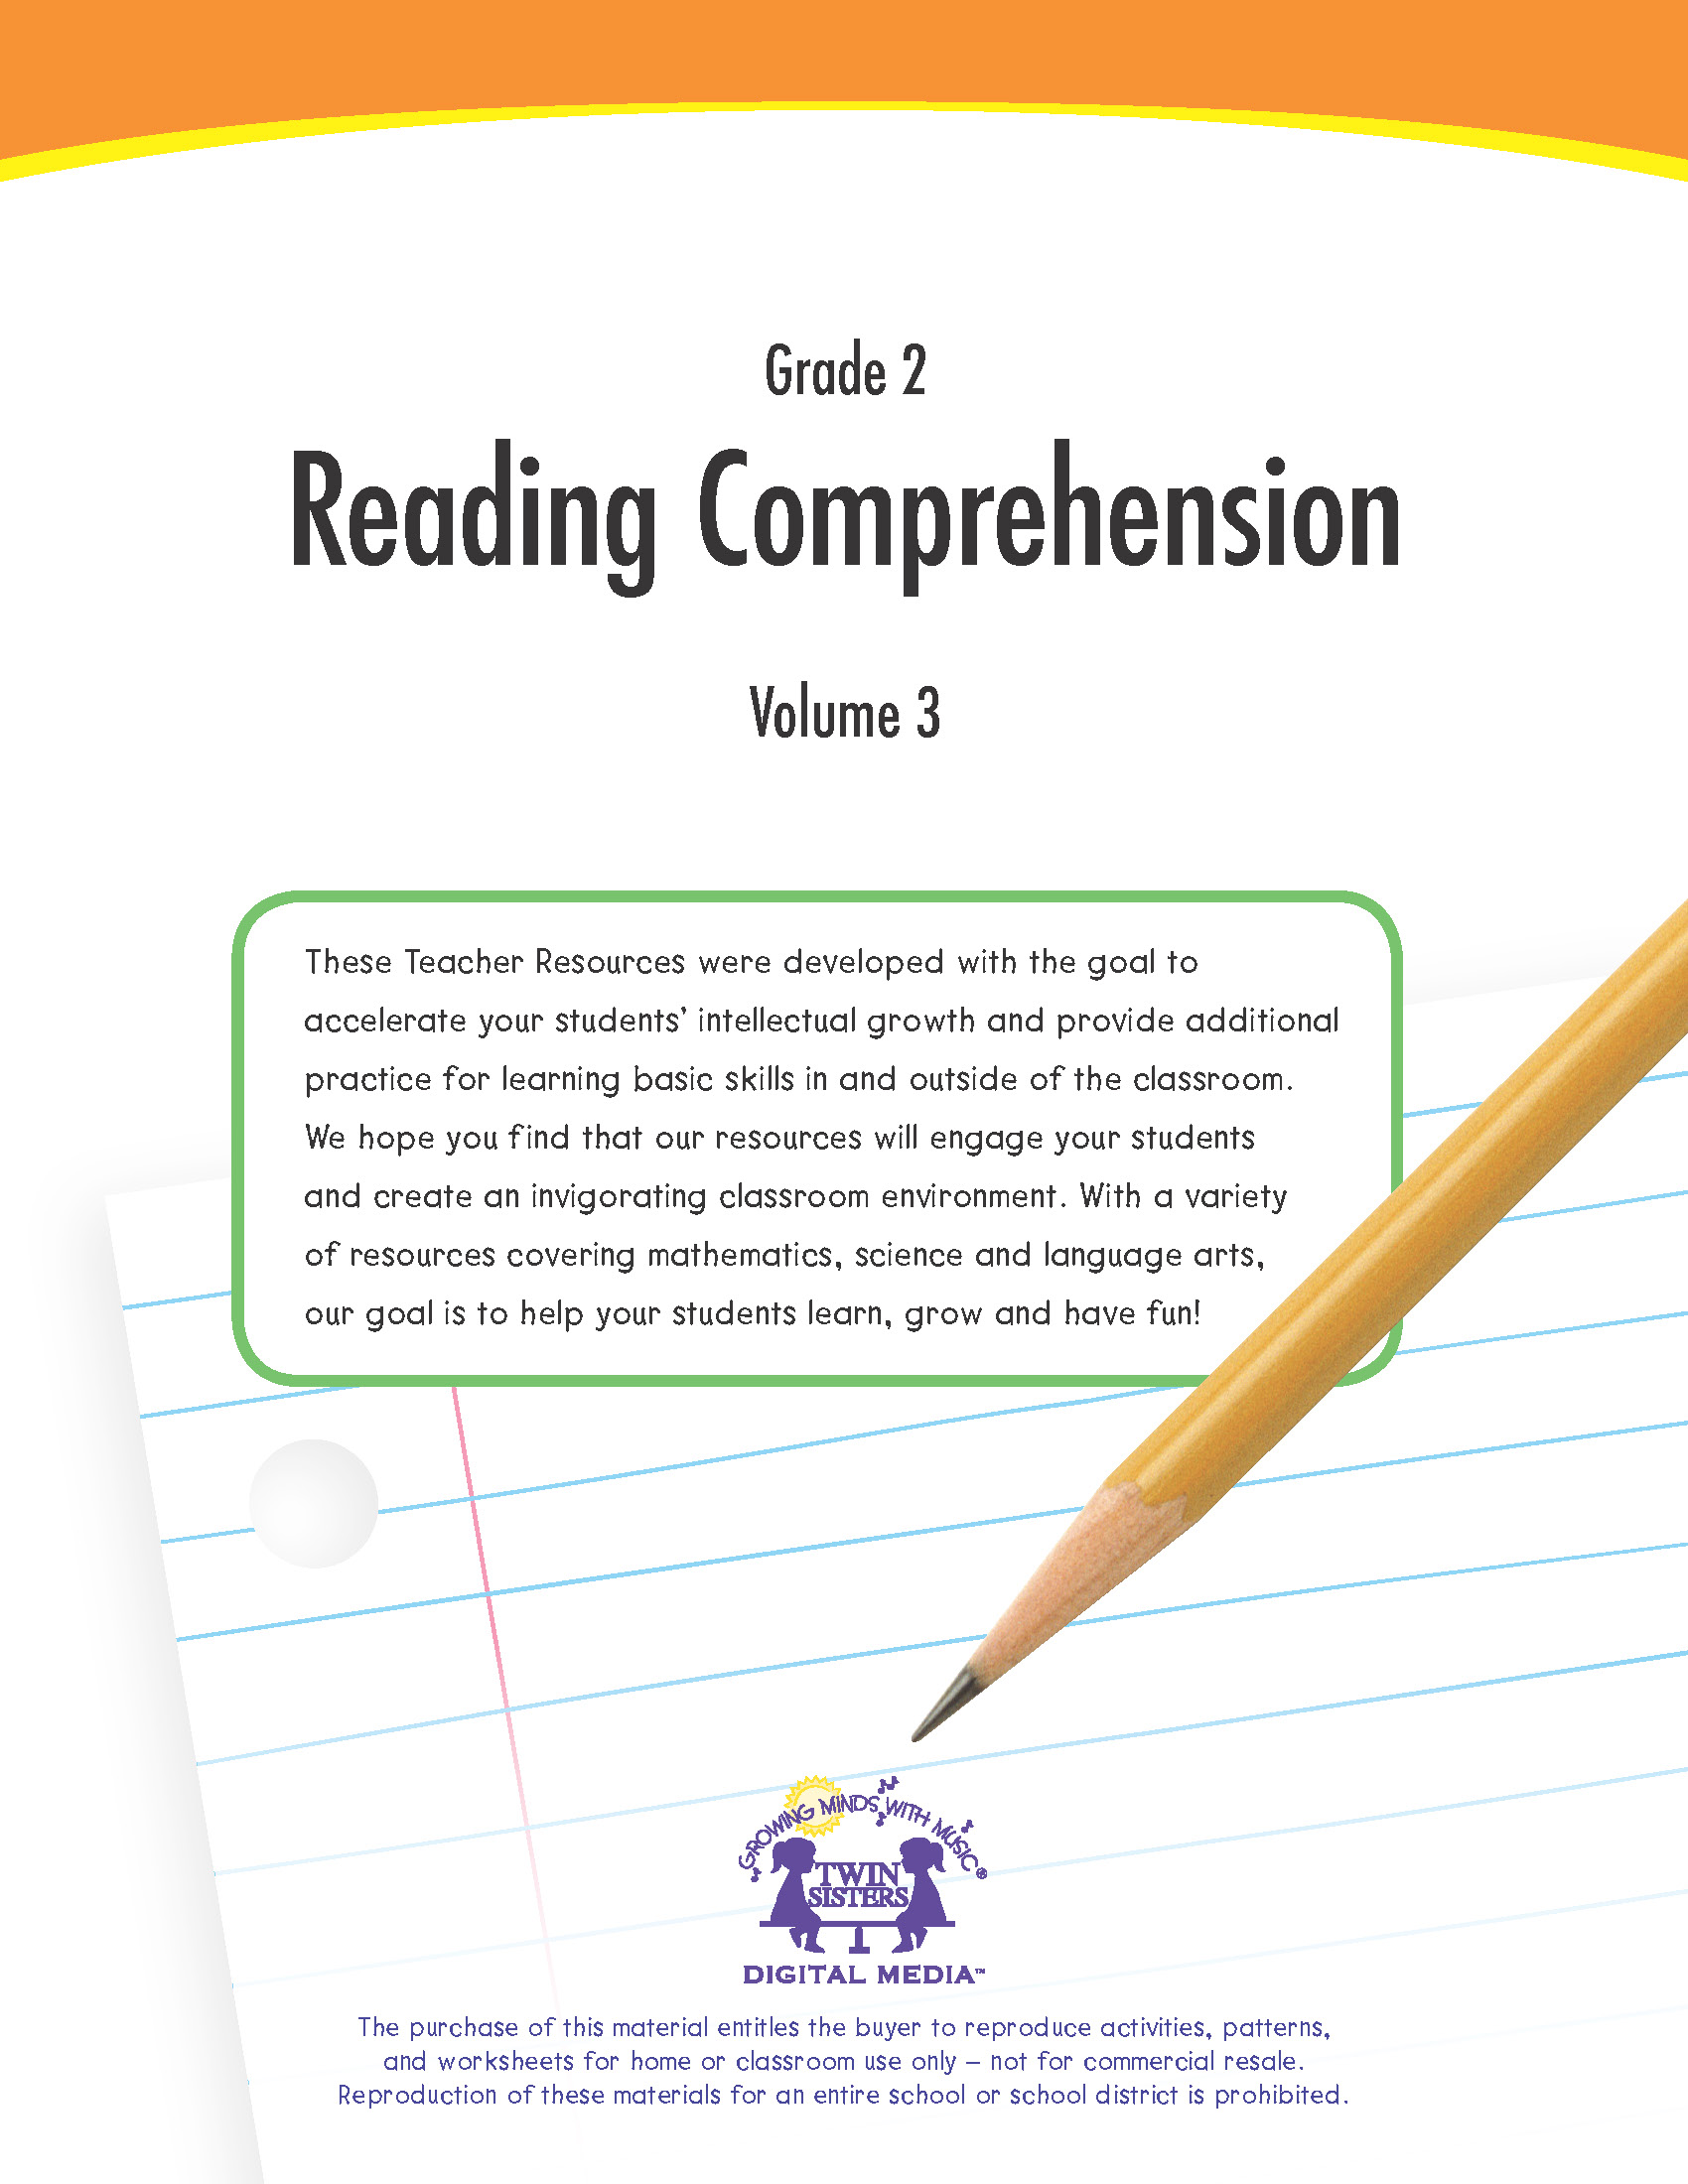 Grade 2 Reading Comprehension Volume 3